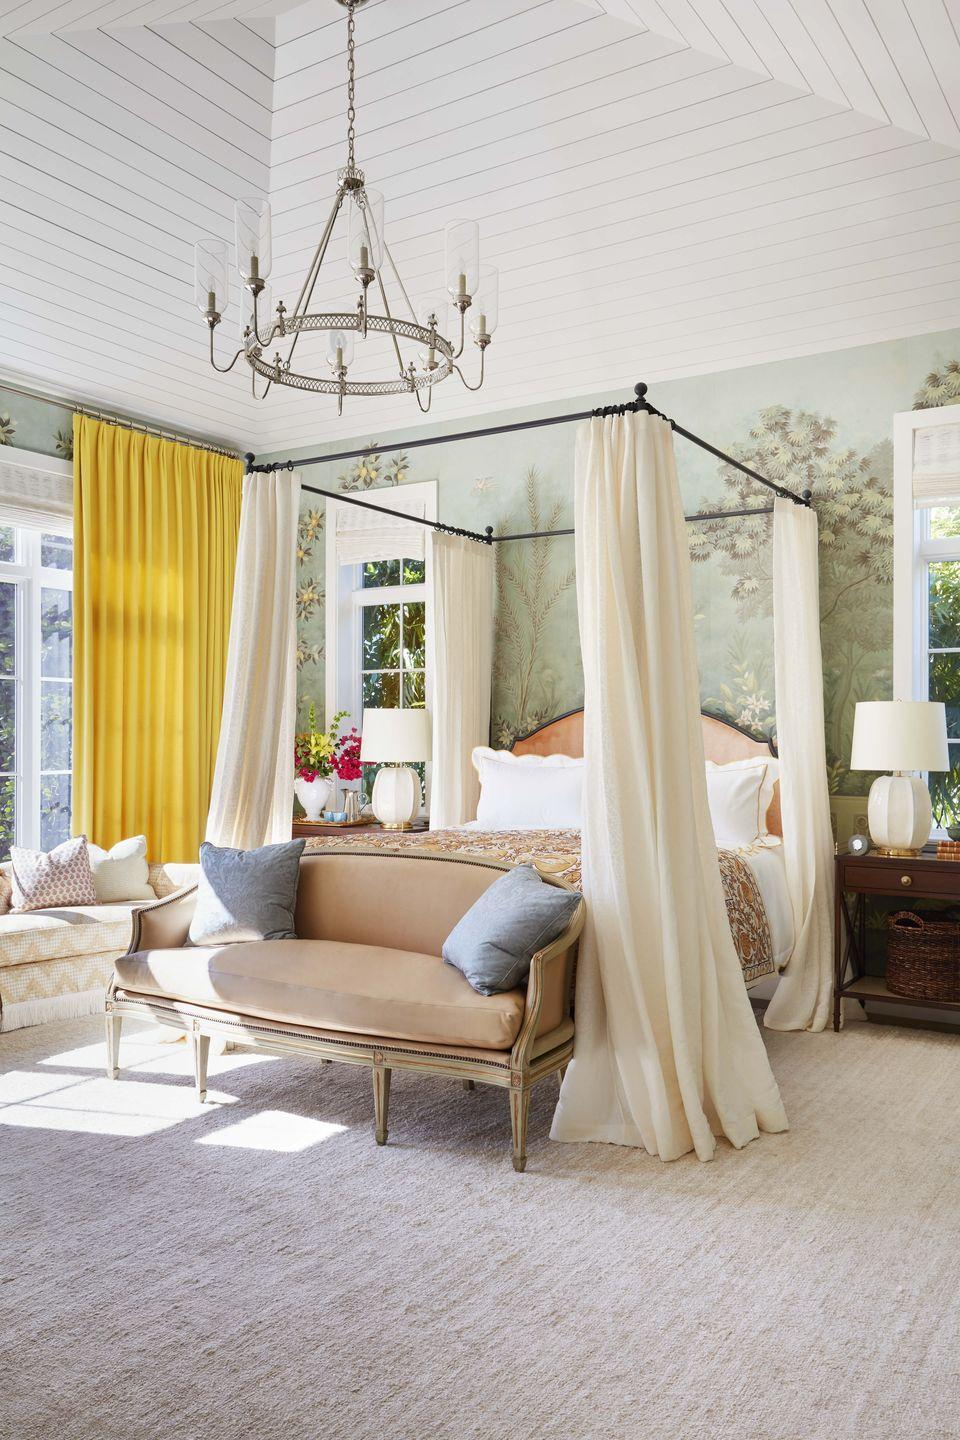 "<p>This sun-drenched bedroom resides in a <a href=""https://www.veranda.com/decorating-ideas/house-tours/a35369885/summer-thornton-naples-house-tour-2021/"" rel=""nofollow noopener"" target=""_blank"" data-ylk=""slk:Naples, Florida vacation home"" class=""link rapid-noclick-resp"">Naples, Florida vacation home</a> masterfully decorated by <a href=""https://summerthorntondesign.com/"" rel=""nofollow noopener"" target=""_blank"" data-ylk=""slk:Summer Thornton"" class=""link rapid-noclick-resp"">Summer Thornton</a>. The Chicago-based designer makes the most of dramatically high ceilings in this primary bedroom suite, using an understated yet elegant chandelier to create a sophisticated glow. Bedside lamps are the perfect choice when a softer glow is needed while relishing the last pages of the latest book club pick. </p>"